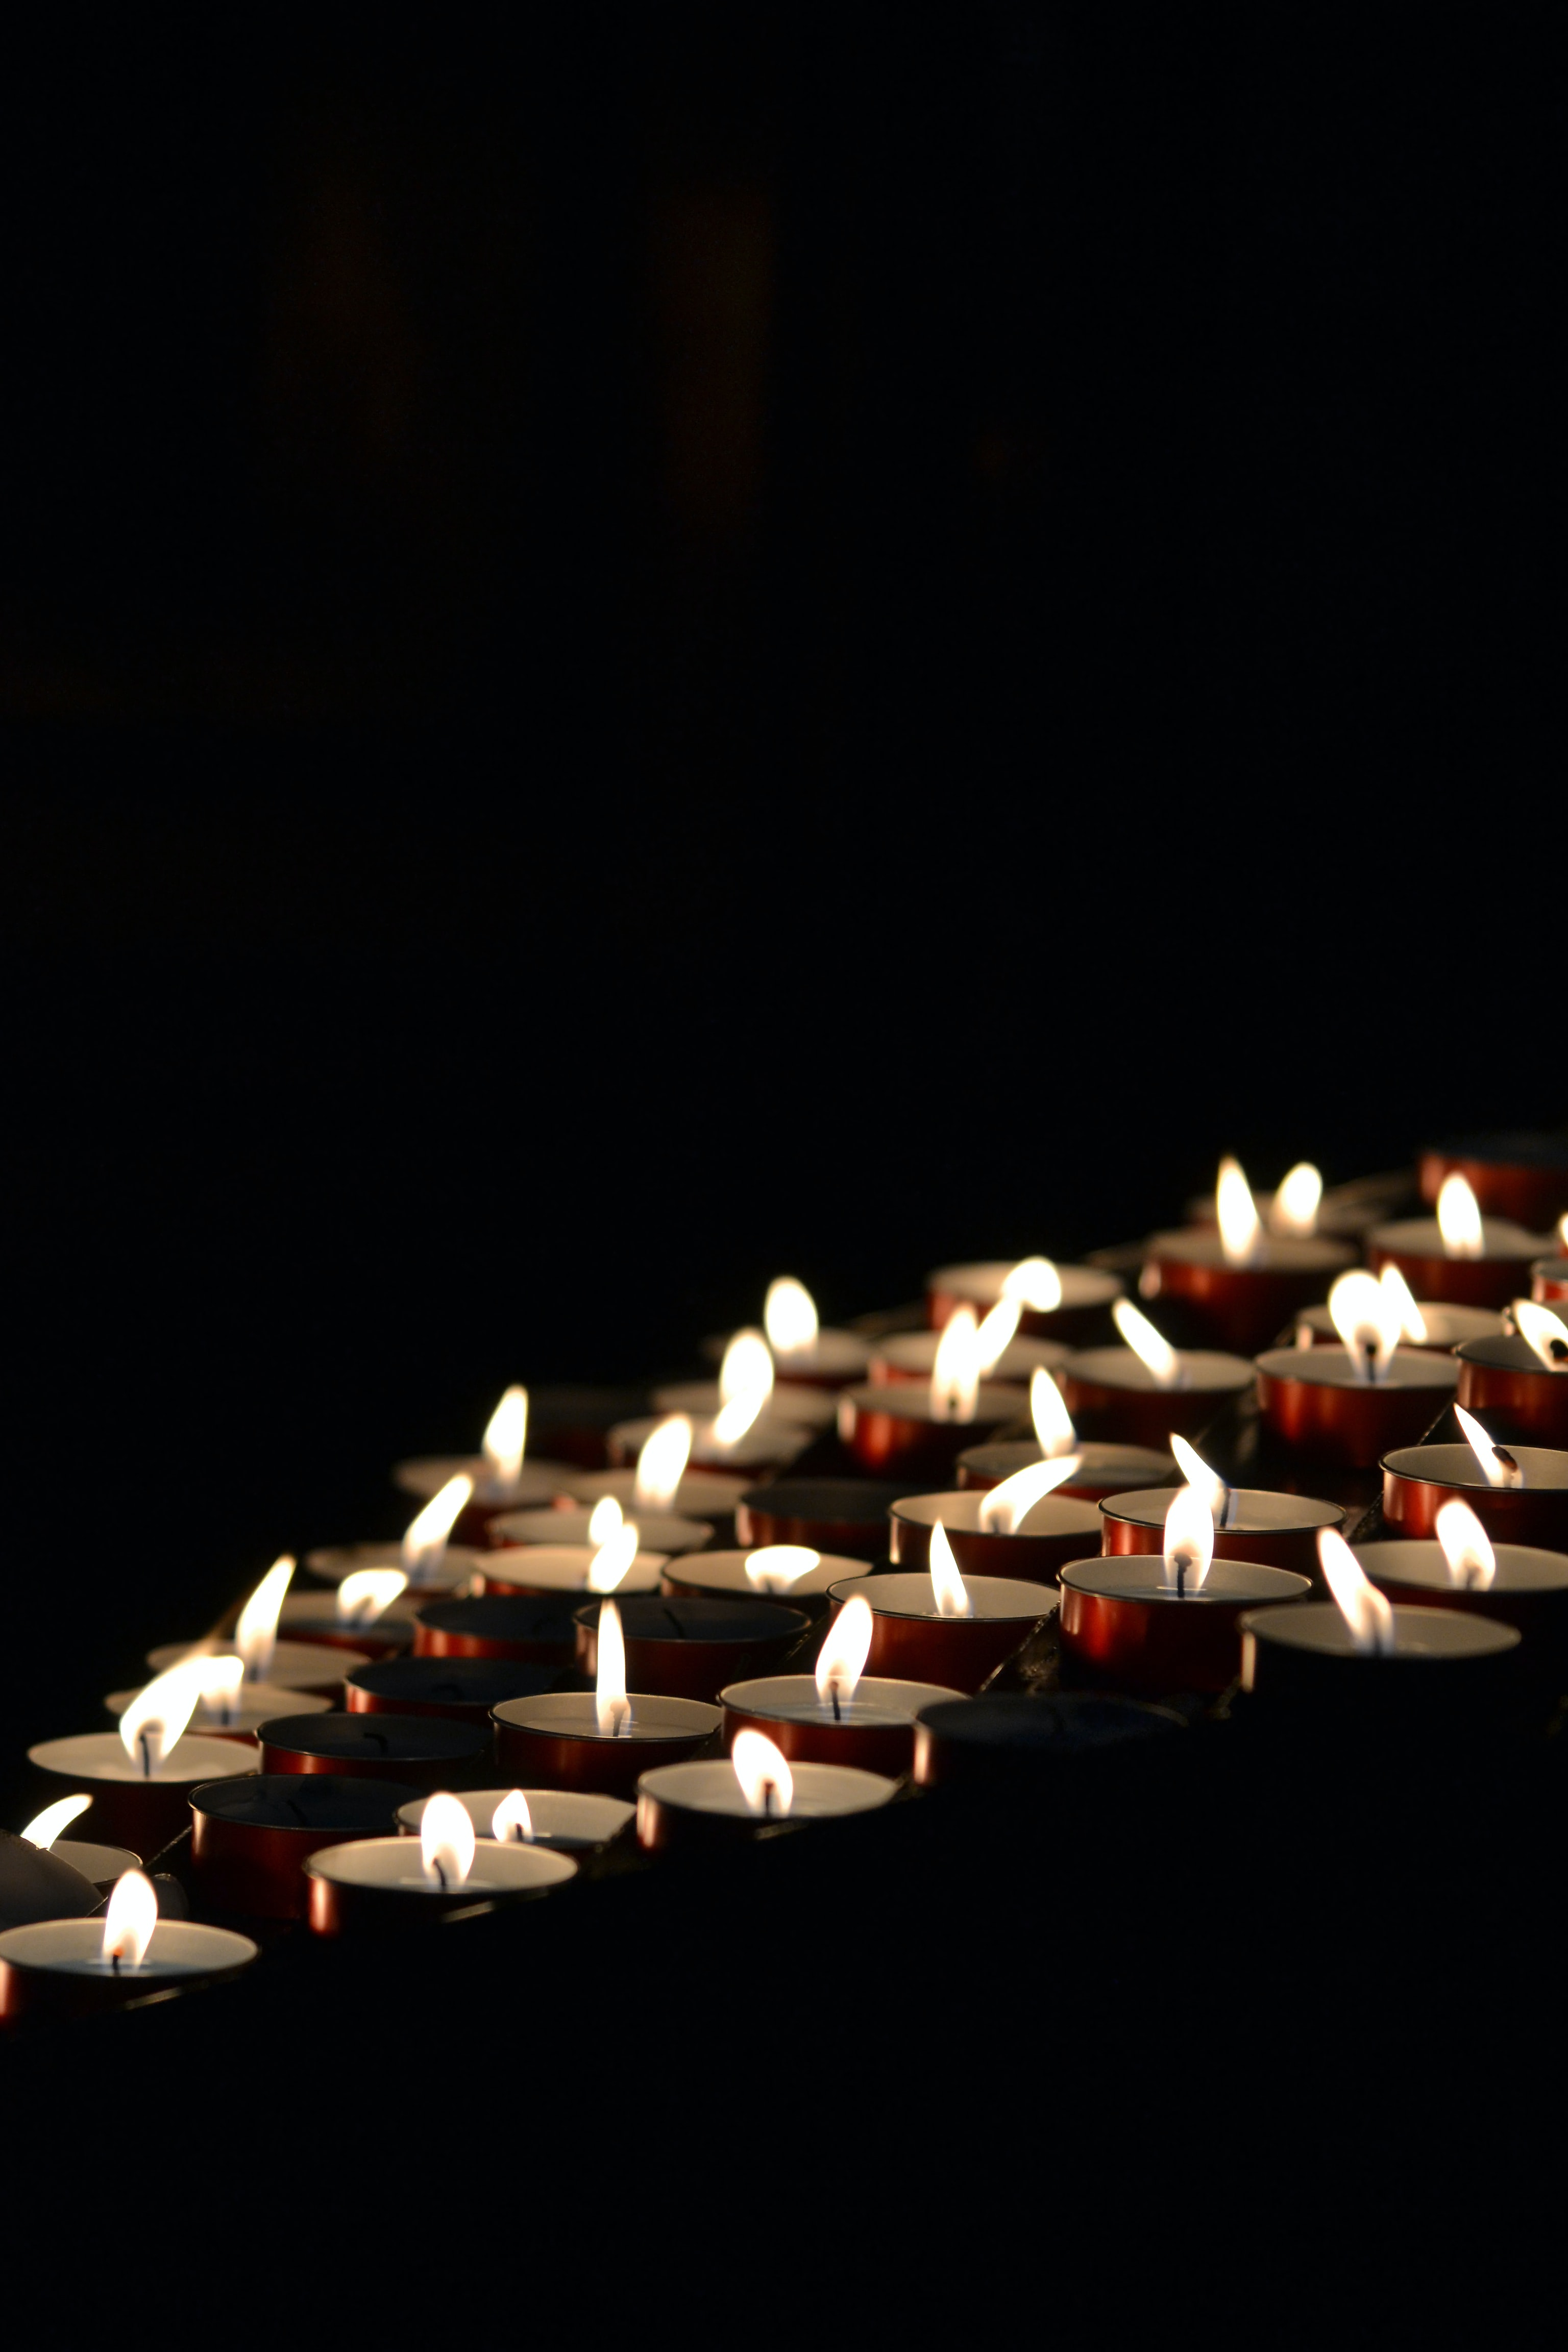 95583 Screensavers and Wallpapers Candles for phone. Download Fire, Candles, Dark, Darkness pictures for free